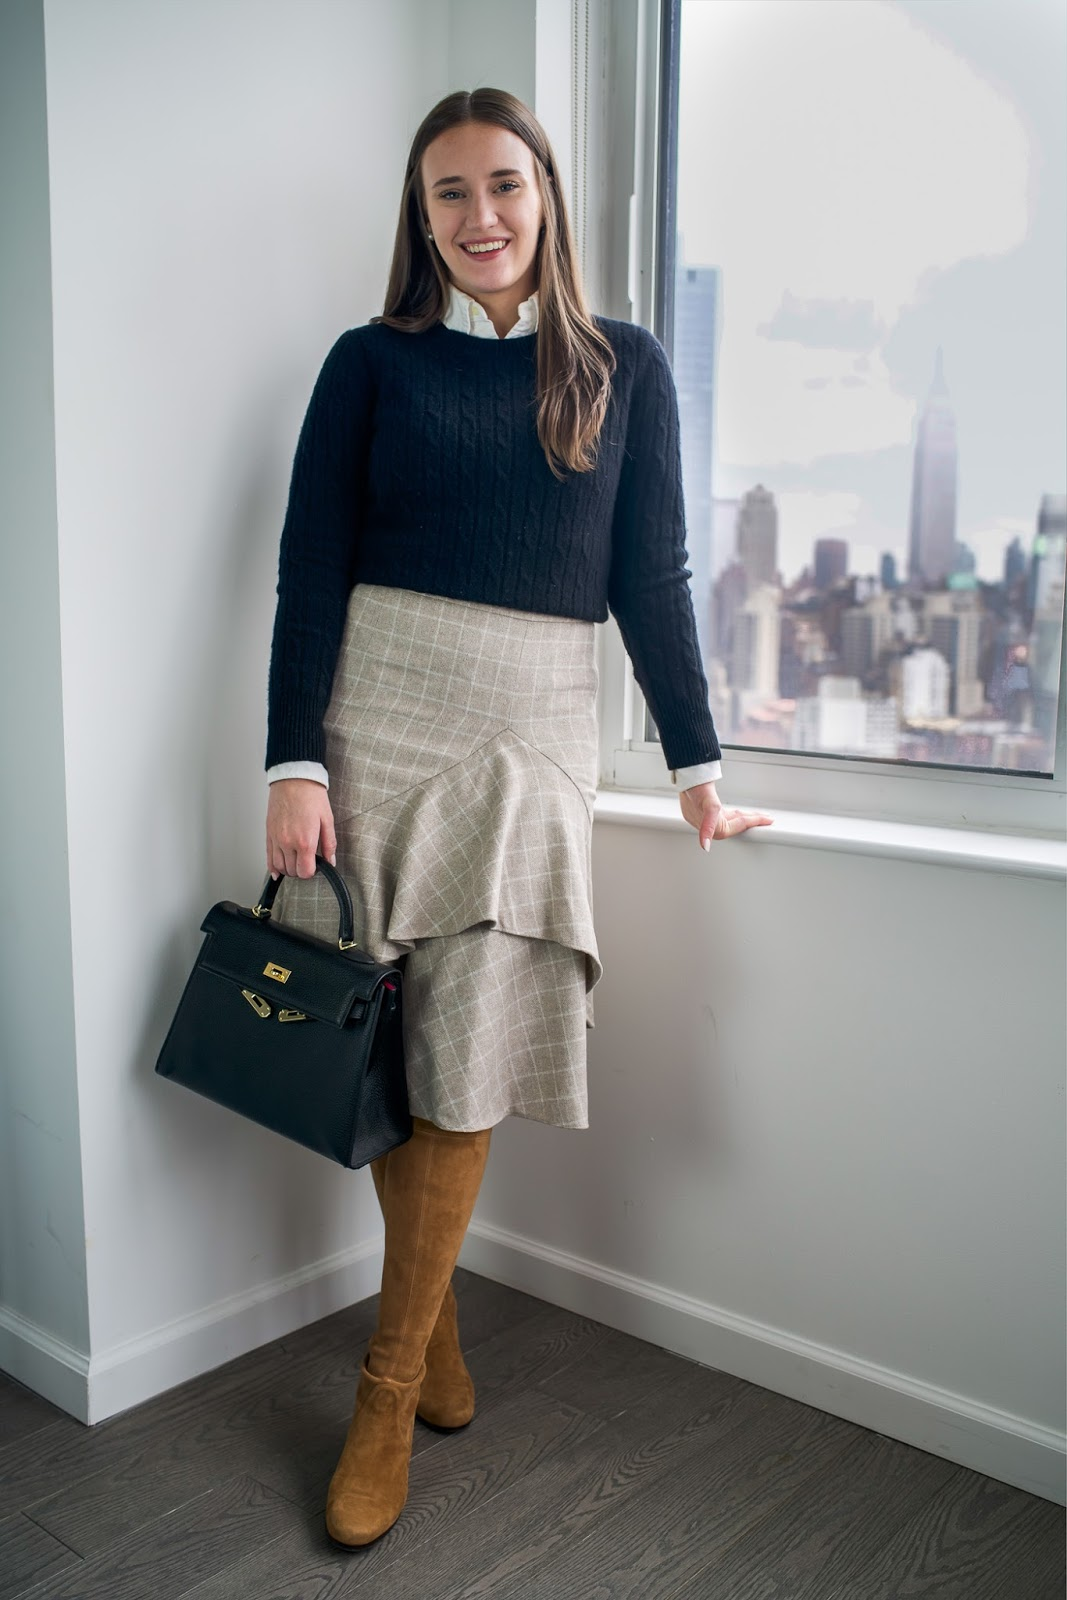 bc402a076e1 What To Wear To Work In The Winter | New York City Fashion and ...